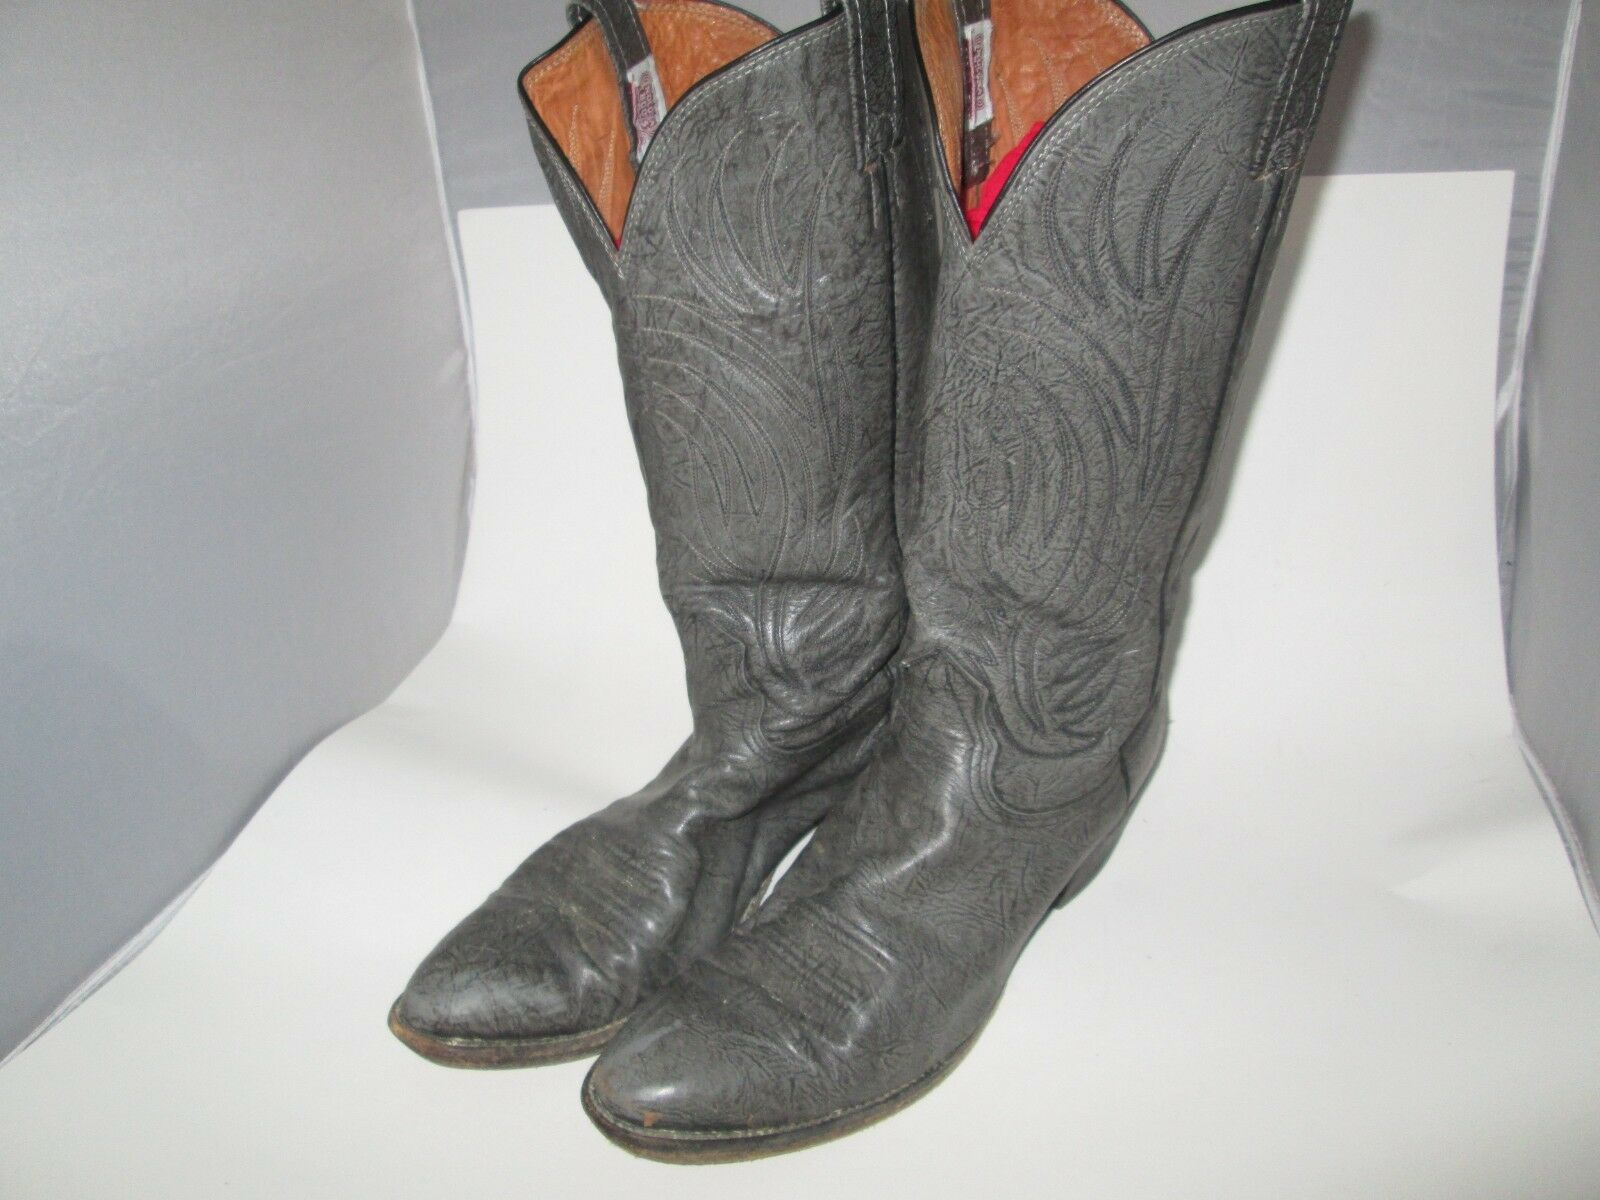 Men's NOCONA Cowboy Western Boots G017G Leather Size 11 B Weathered Grey USA